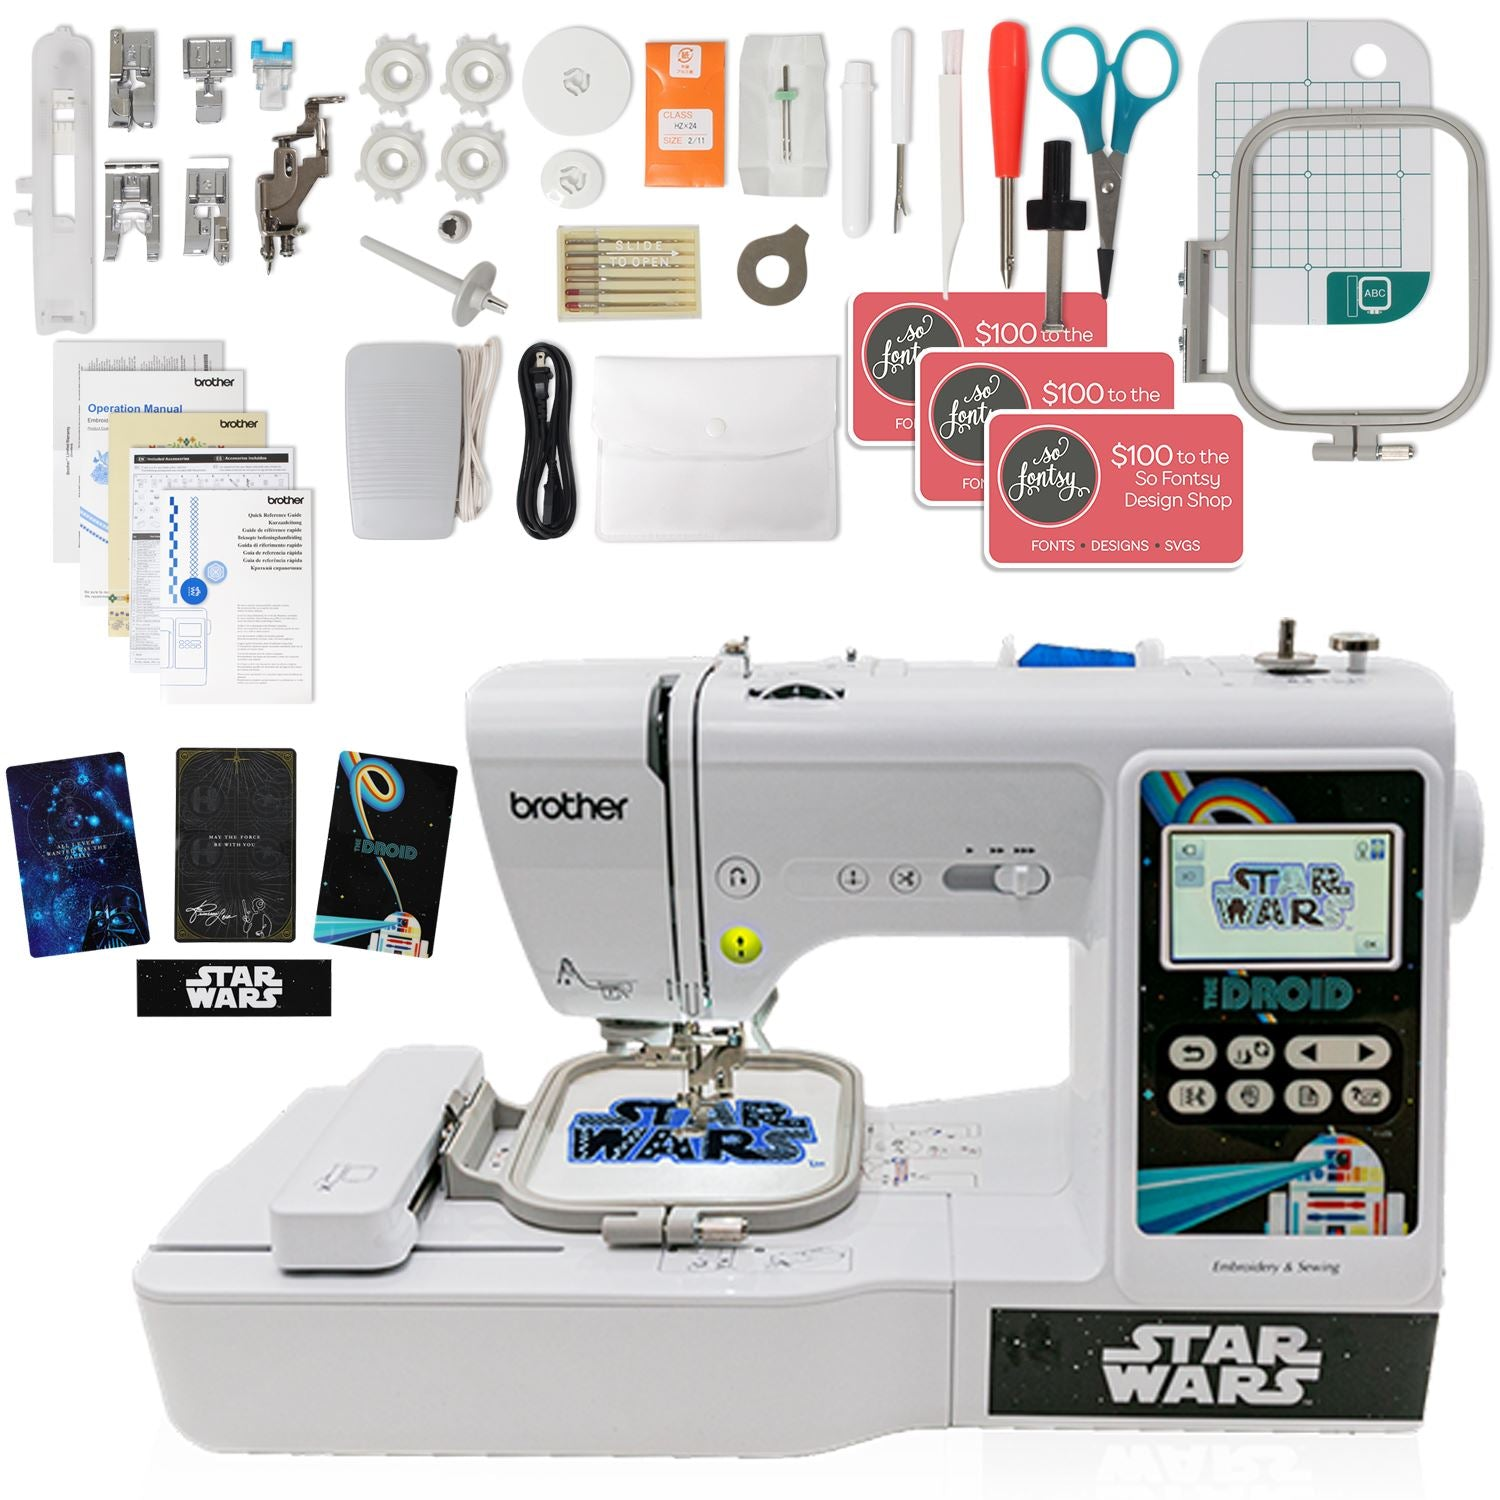 Brother LB5000S Star Wars Sewing and Embroidery Machine